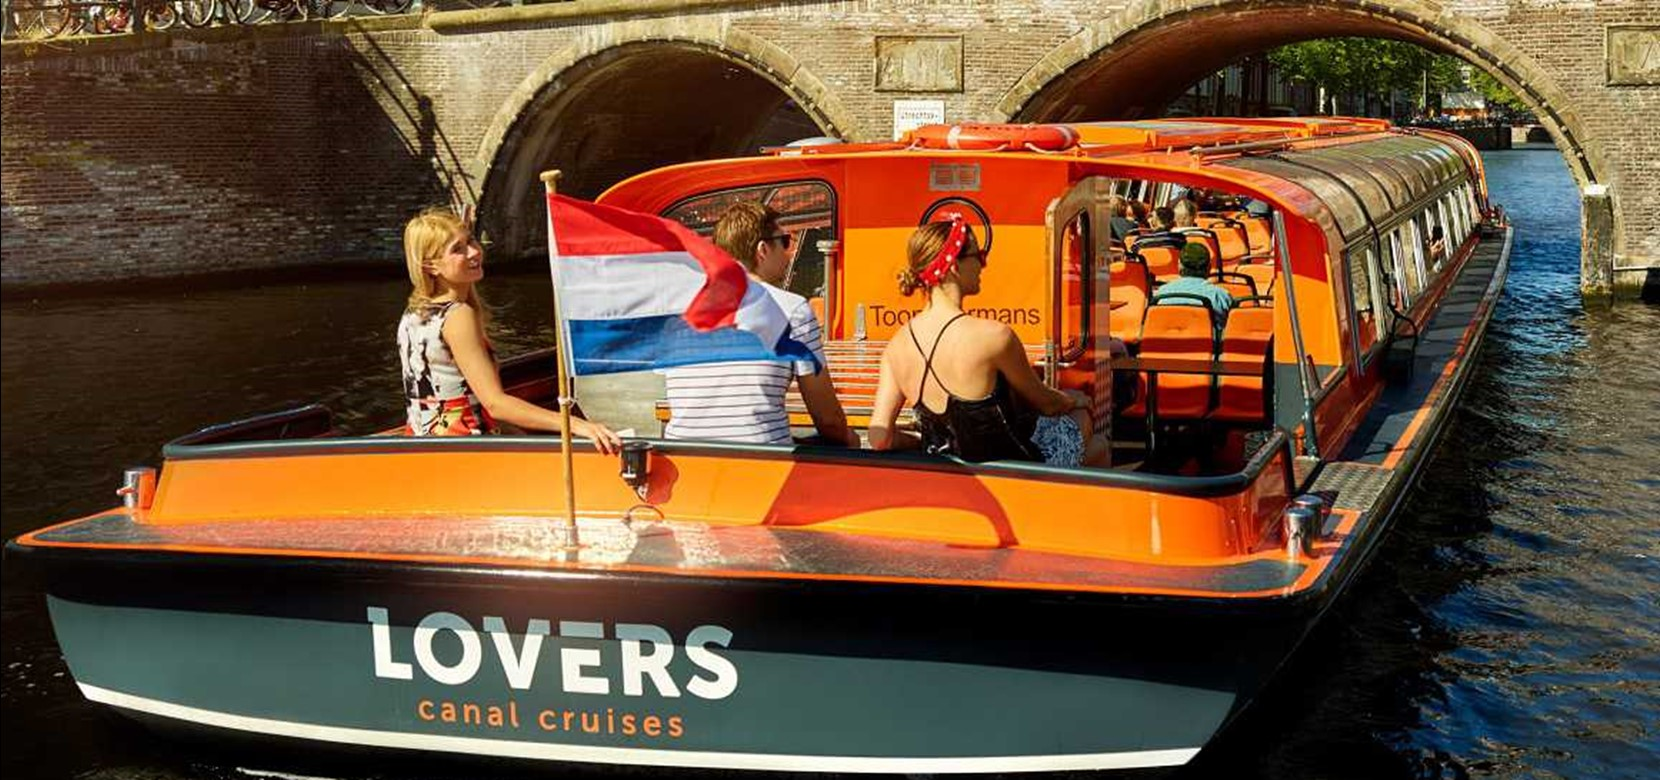 Free Amsterdam Canal Cruise + Amsterdam City Tour + Countryside & Windmills tour